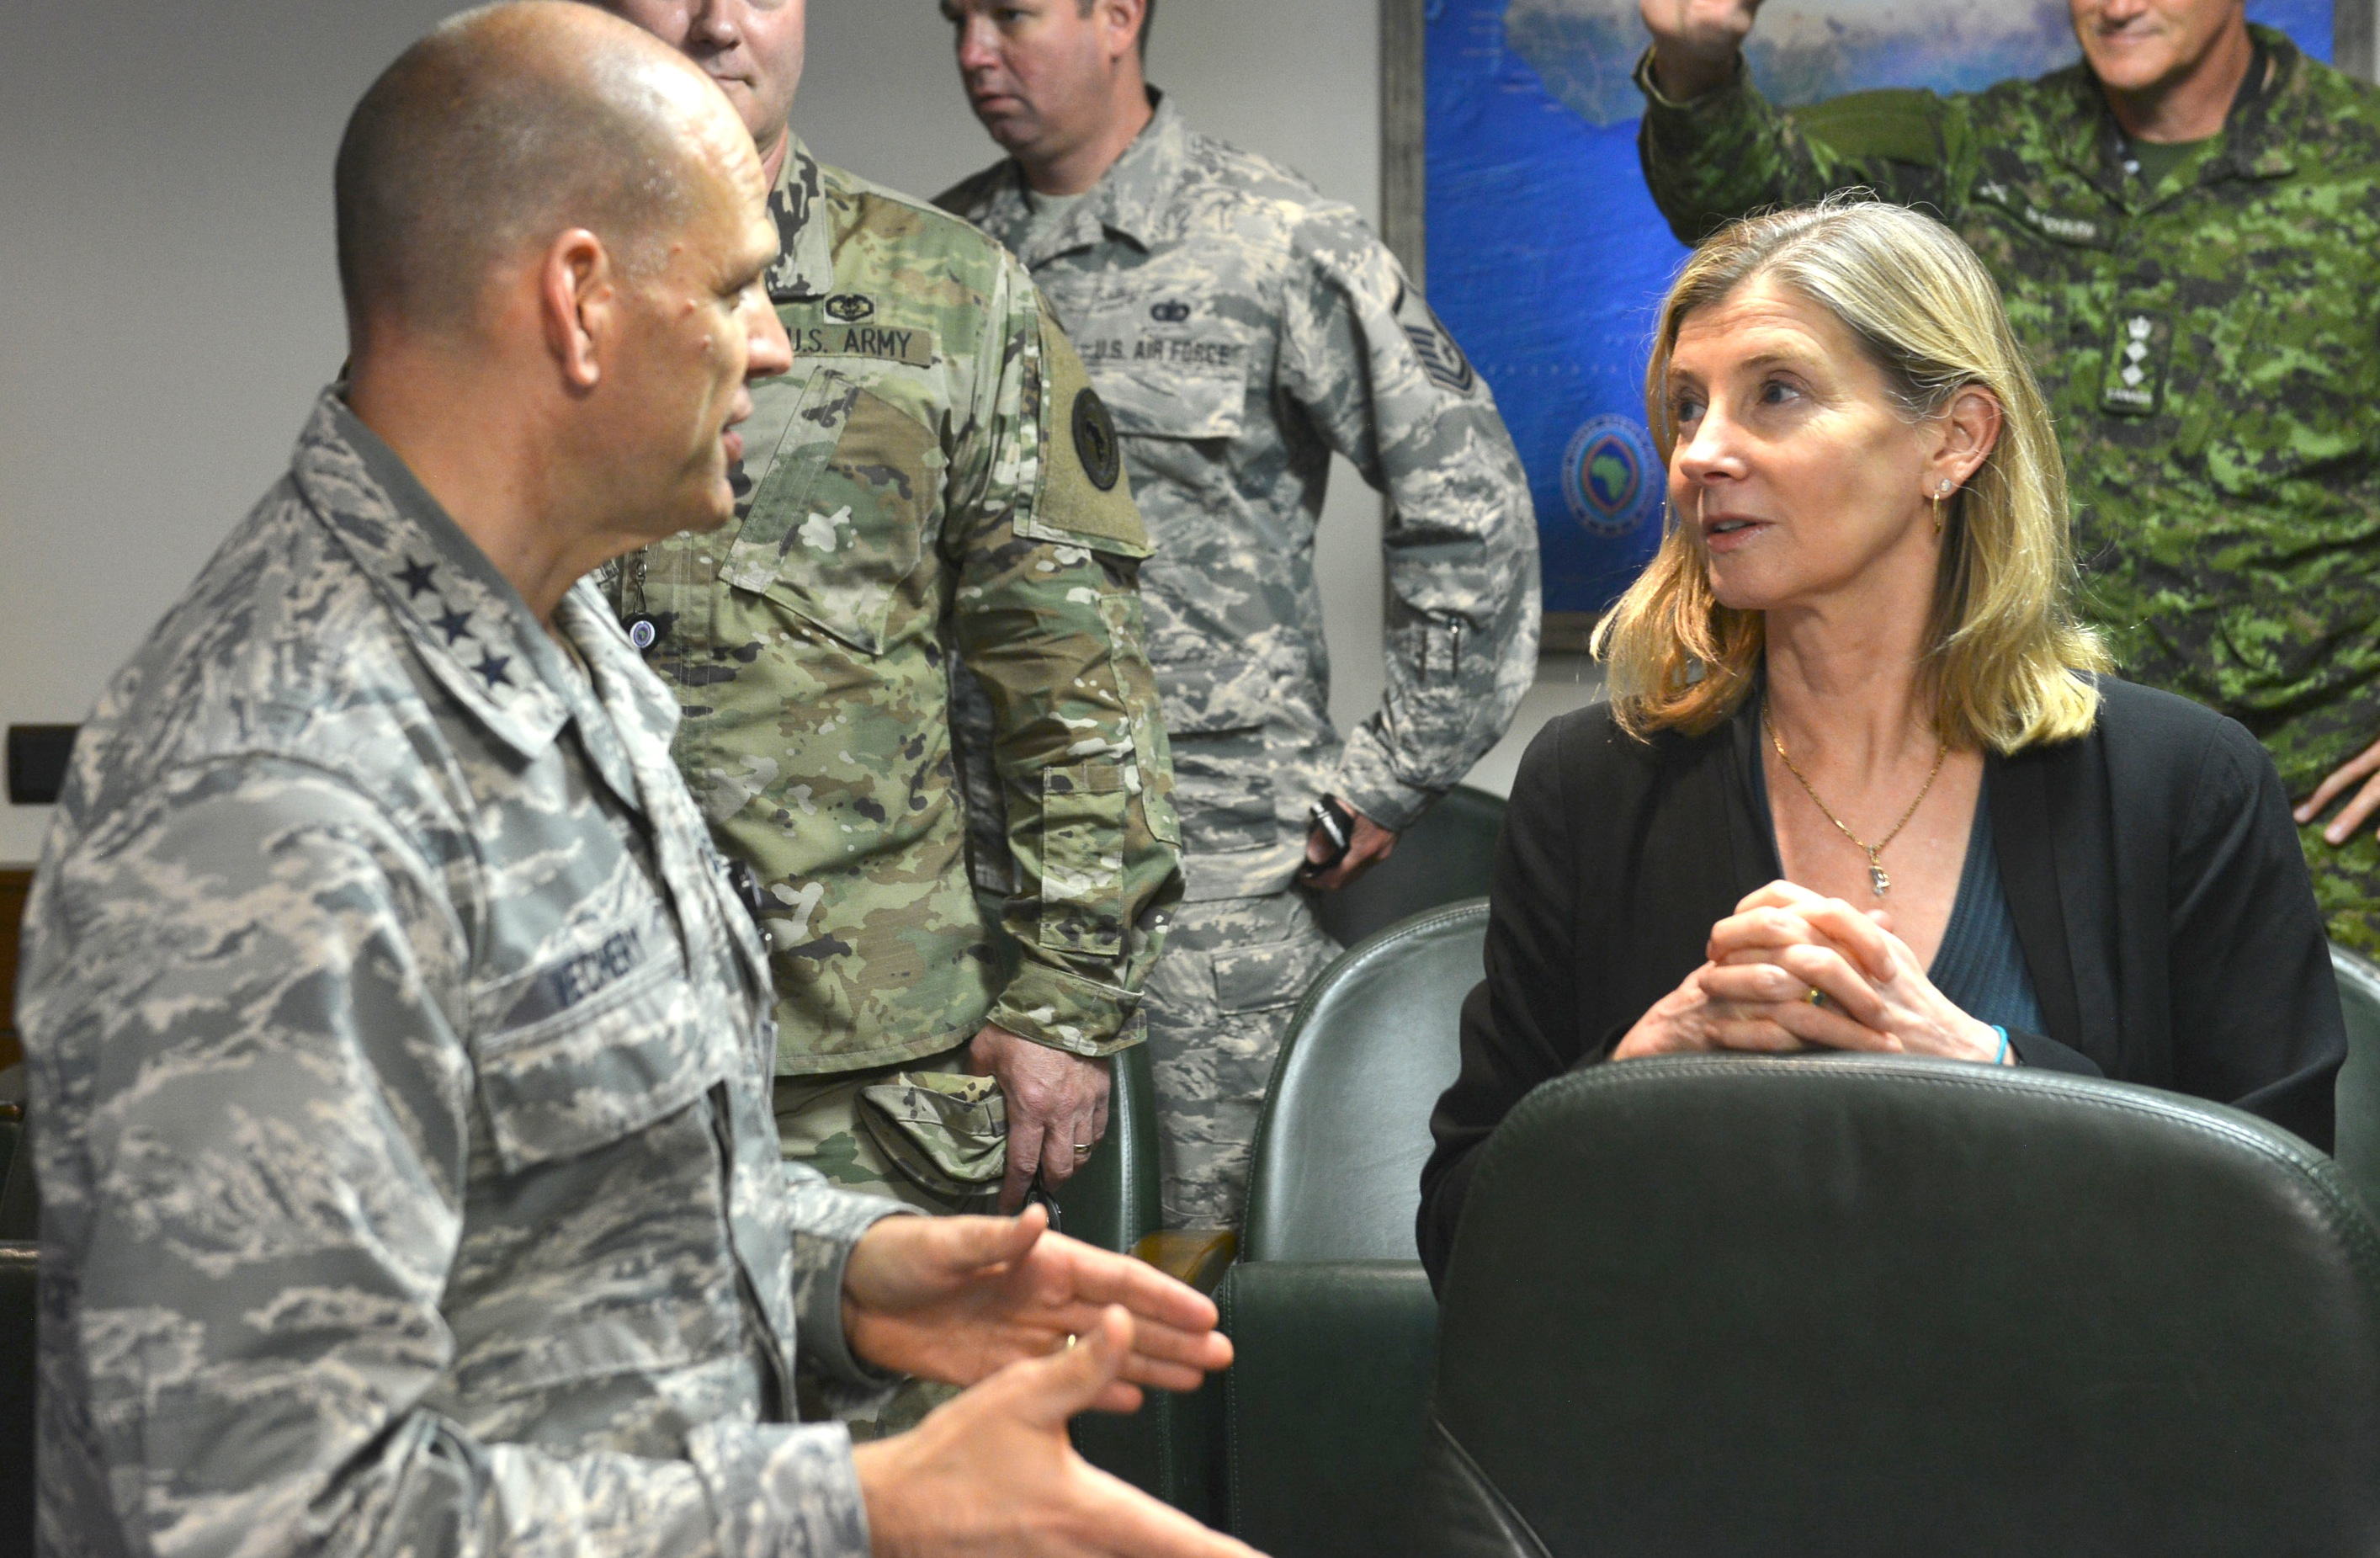 STUTTGART, Germany – The United States Institute of Peace President, Nancy Lindborg, speaks with Air Force Lt. Gen. James Vechery, deputy to the commander for military operations, U.S. Africa Command during her visit to the command's headquarters, Stuttgart, Germany. (Photo by Army Staff Sgt. Grady Jones, AFRICOM Public Affairs)